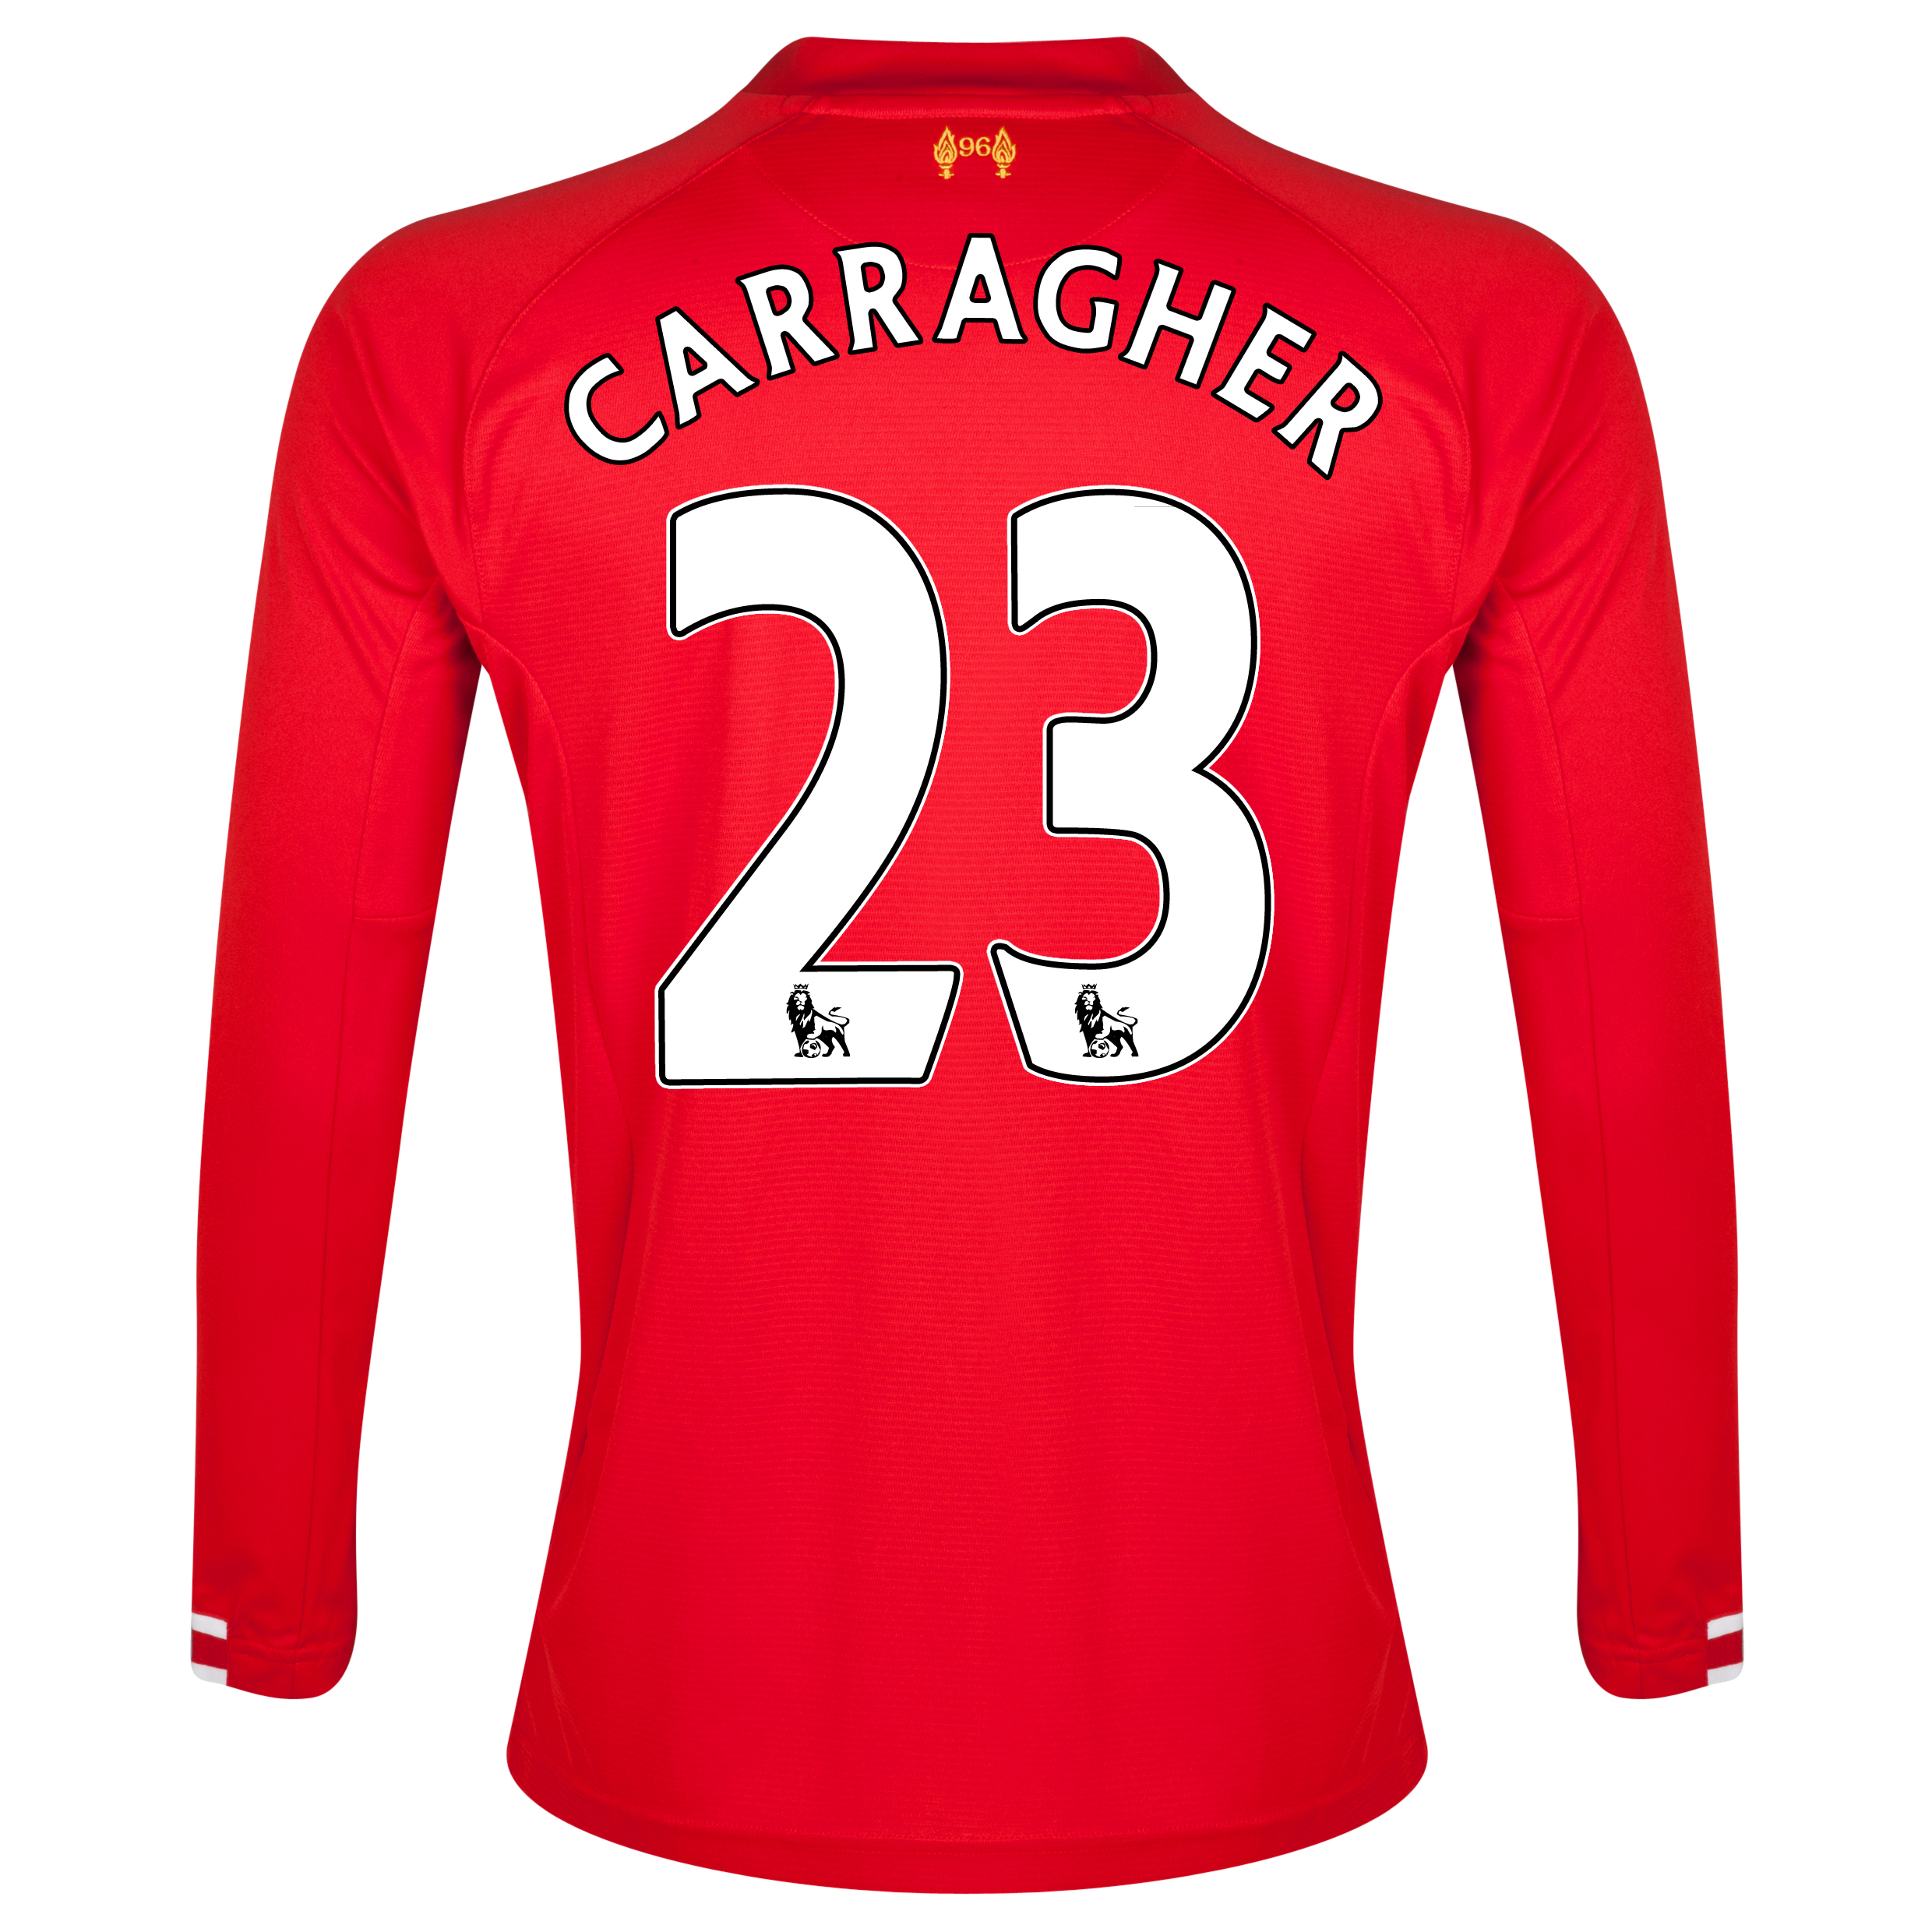 Liverpool Home Shirt 2013/14 - Long Sleeve - Kids with Carragher 23 printing